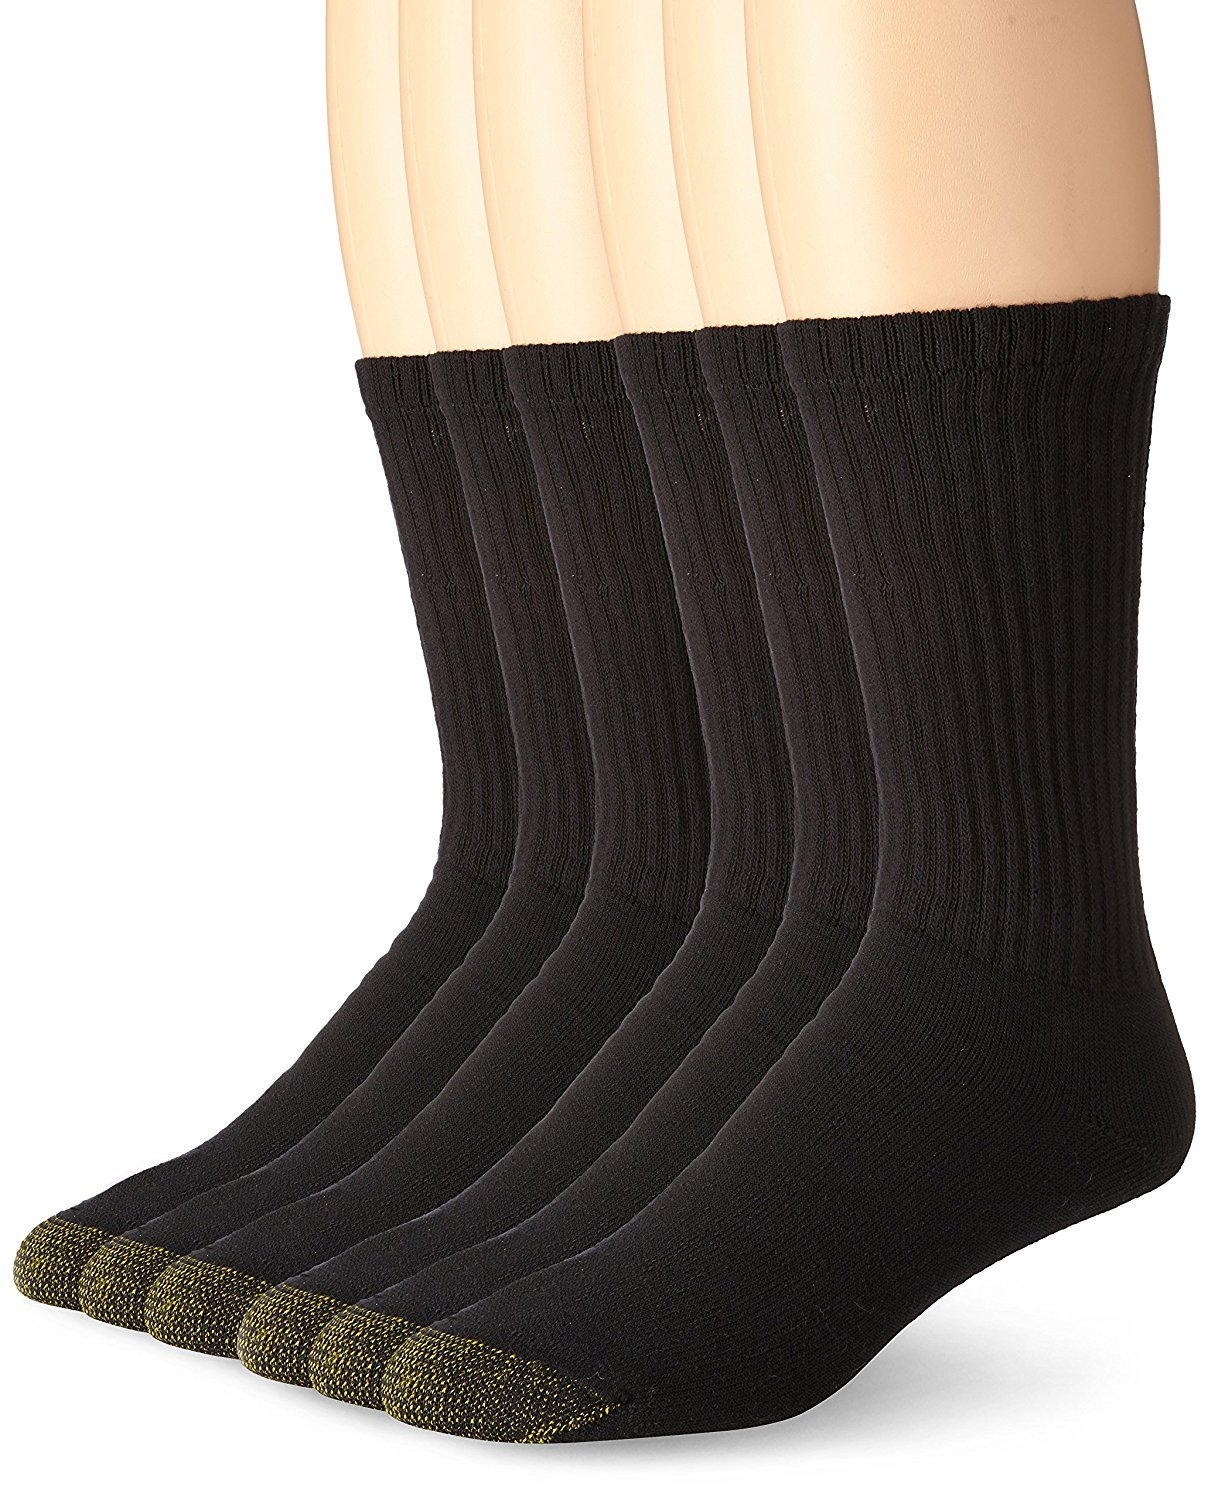 Gold Toe Men's Cotton Crew Athletic Sock 6-Pack (3 PK (18 PAIR) 10-13, Black) by Gold Toe